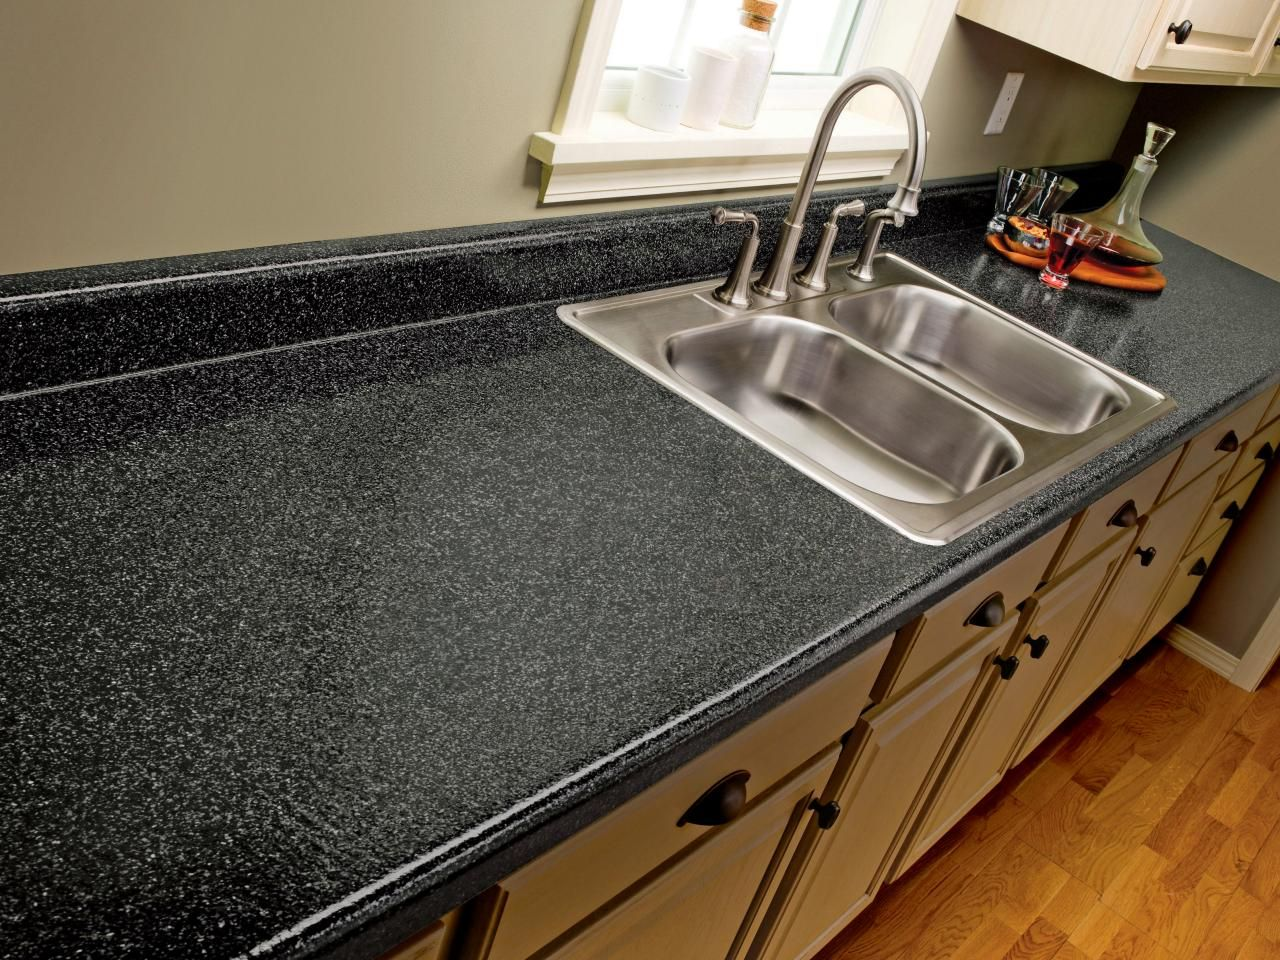 How To Paint Laminate Kitchen Countertops Laminate